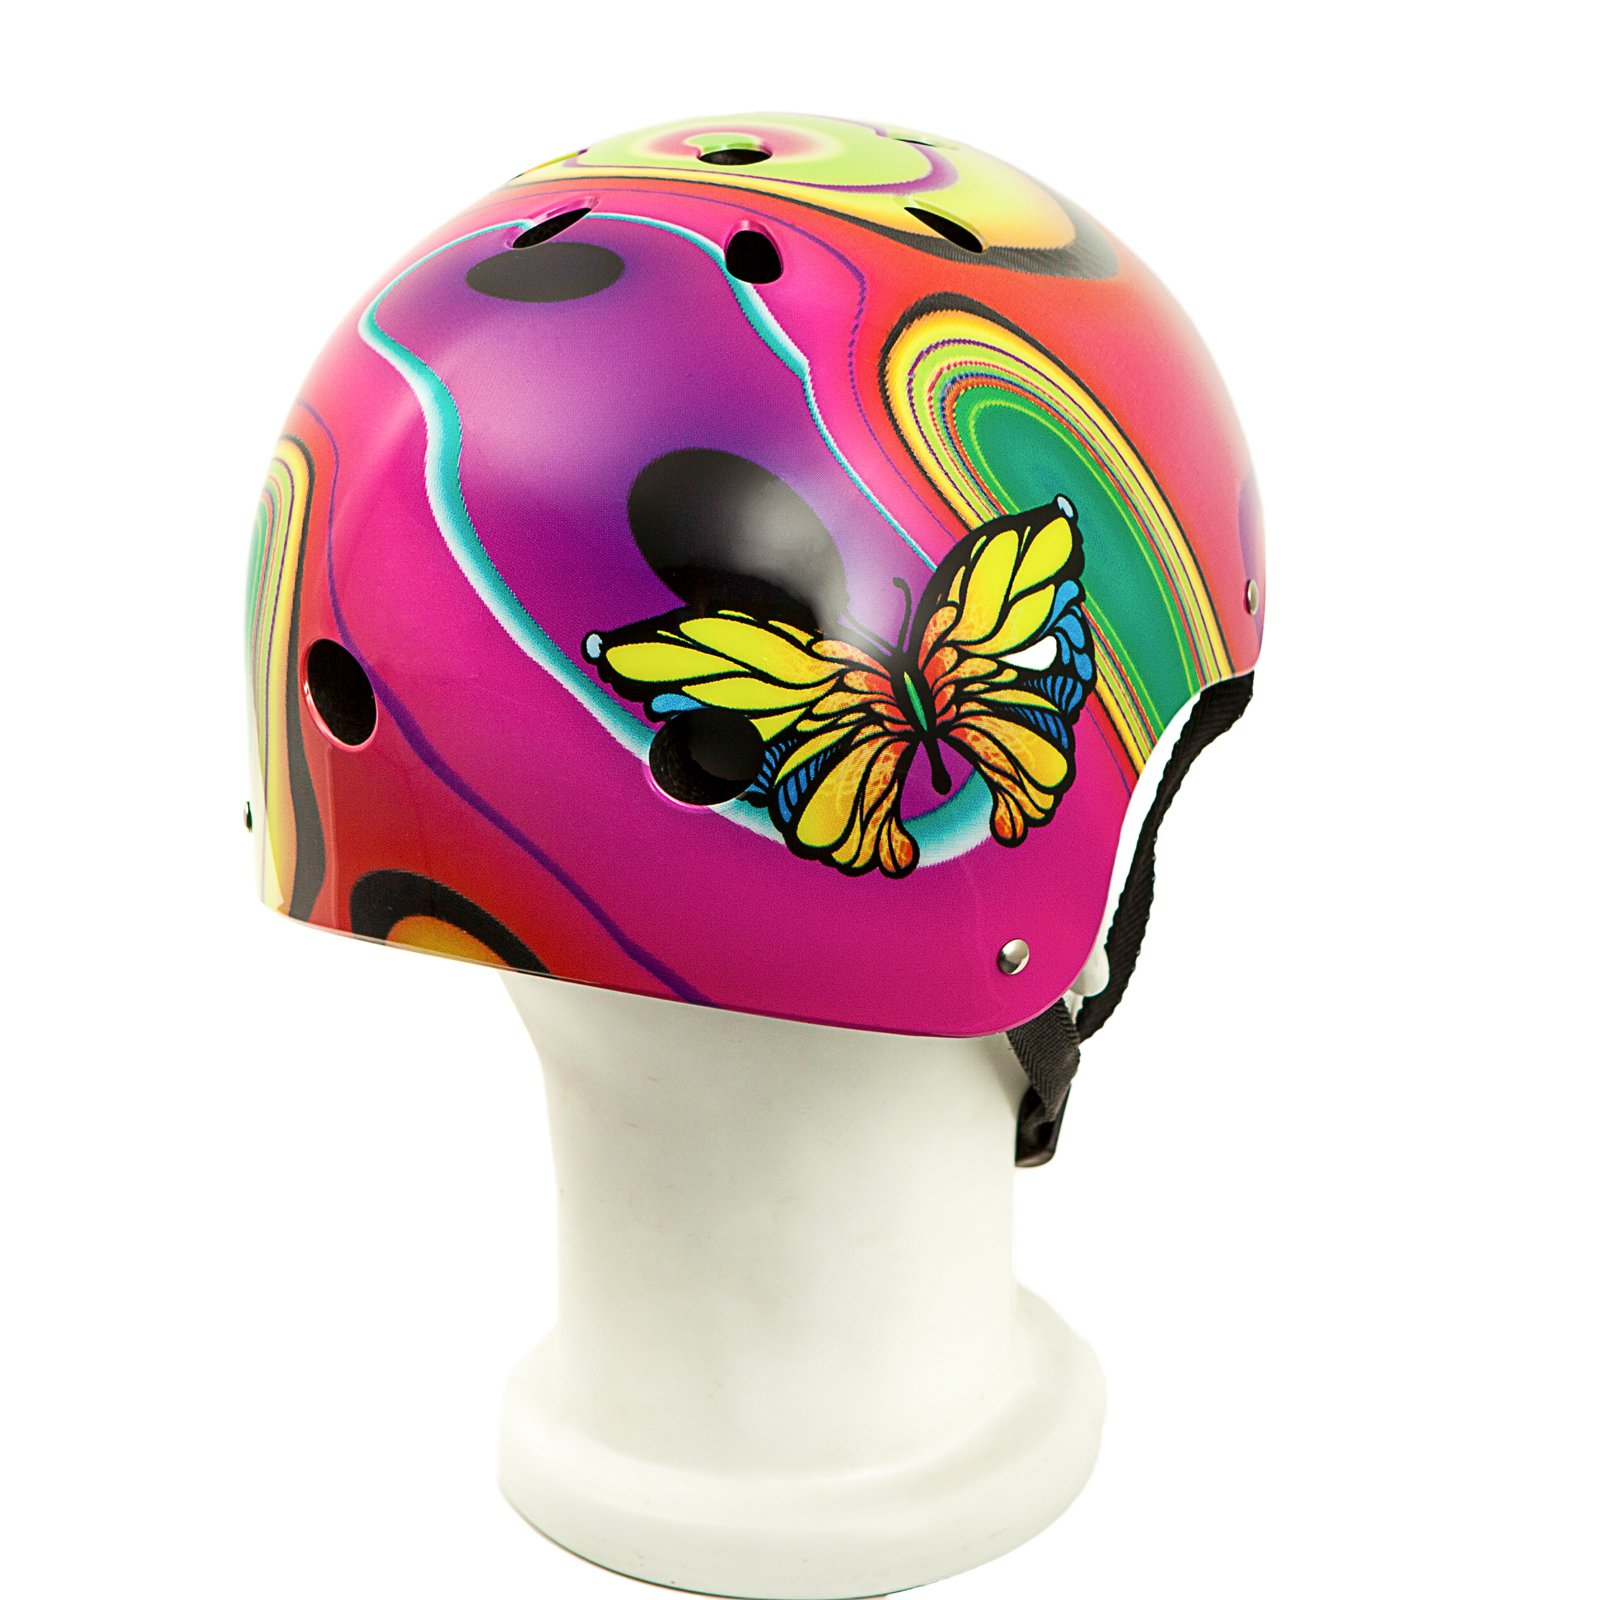 Punisher Skateboards Butterfly Jive Pink and White Adjustable All-Sport Skate-Style Helmet, Medium